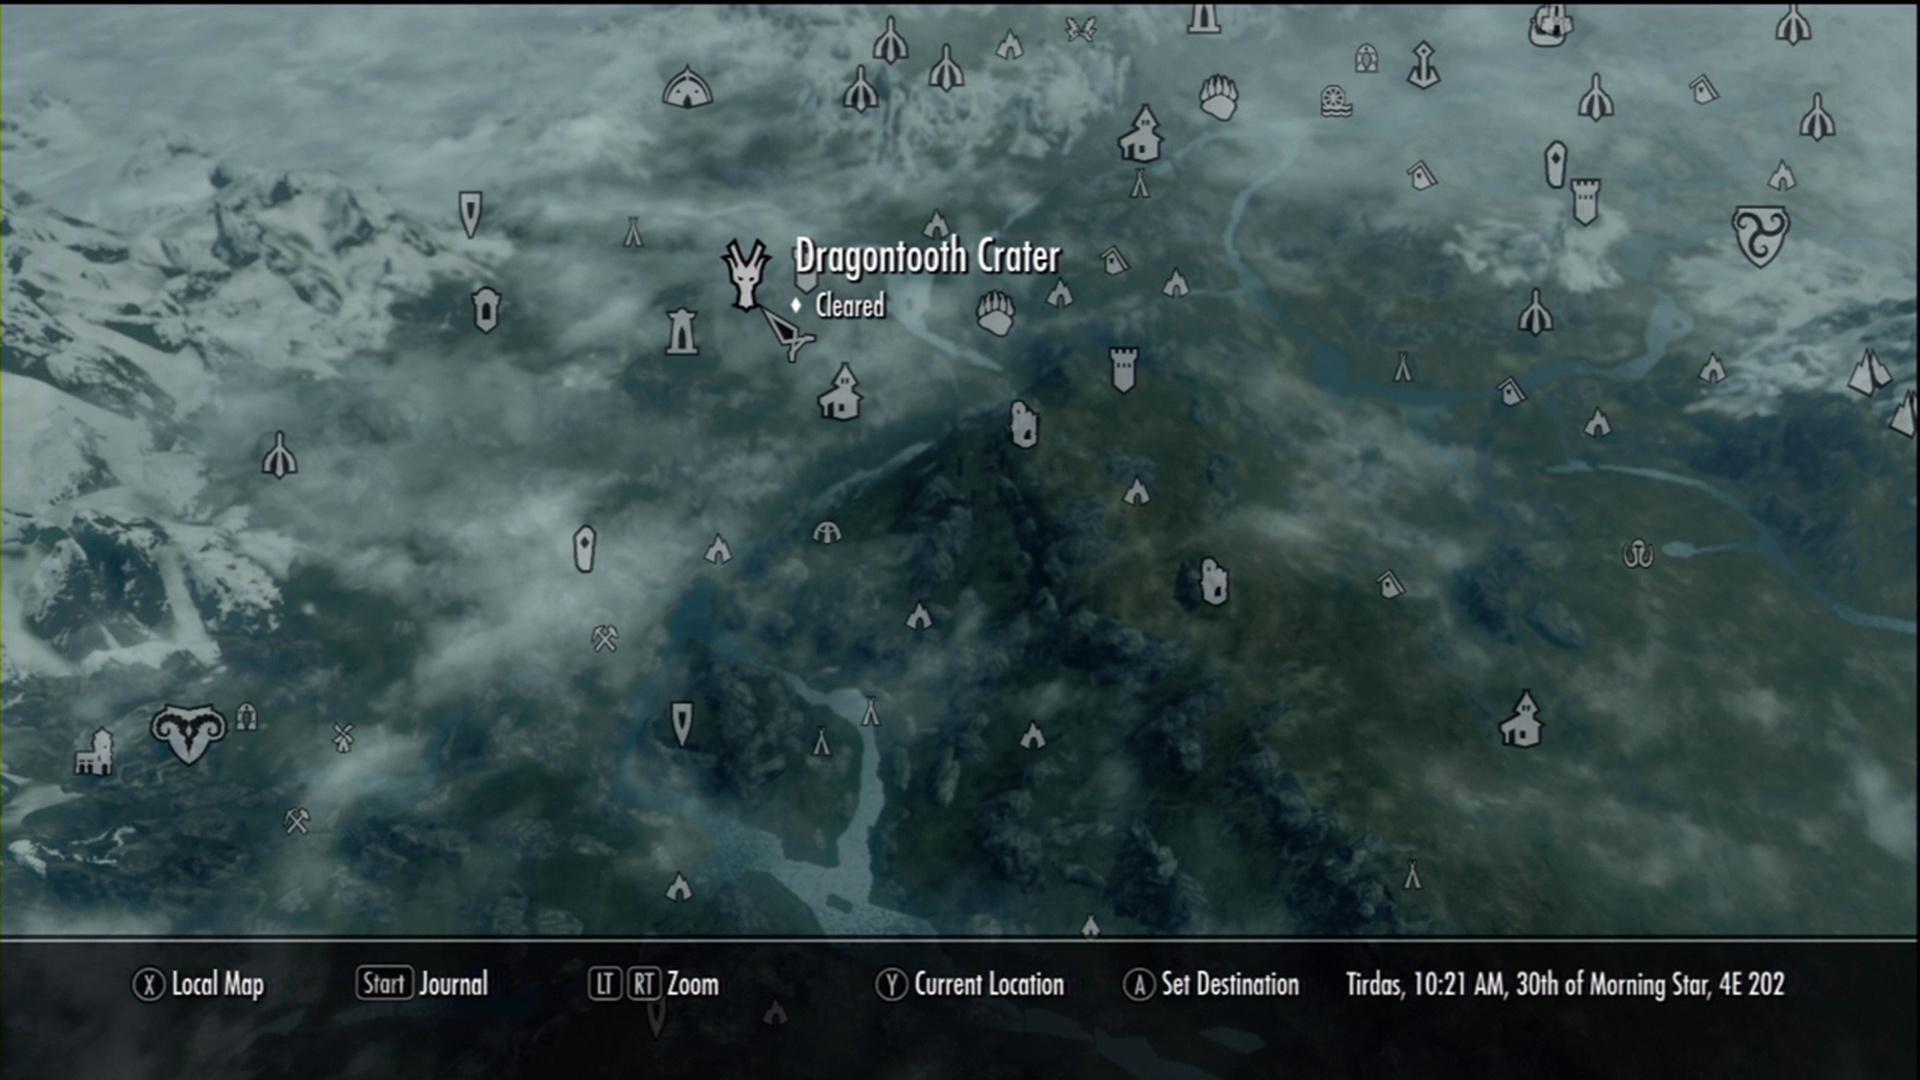 Skyrim Guide - All Dragon Shrines Locations | USgamer on skyrim treasure map 7, skyrim map legend, full skyrim map, skyrim word wall, skyrim silverdrift lair, elder scrolls skyrim map, dragon shouts map, skyrim thu'um locations, blue dragon map, skyrim bonestrewn crest location, minecraft skyrim map, skyrim map mod, skyrim civil war regions, skyrim map with location of every, skyrim mask locations, skyrim civil war map, skyrim all locations, skyrim four skull lookout location, mummy burial sites of a map, skyrim deathbrand treasure map,